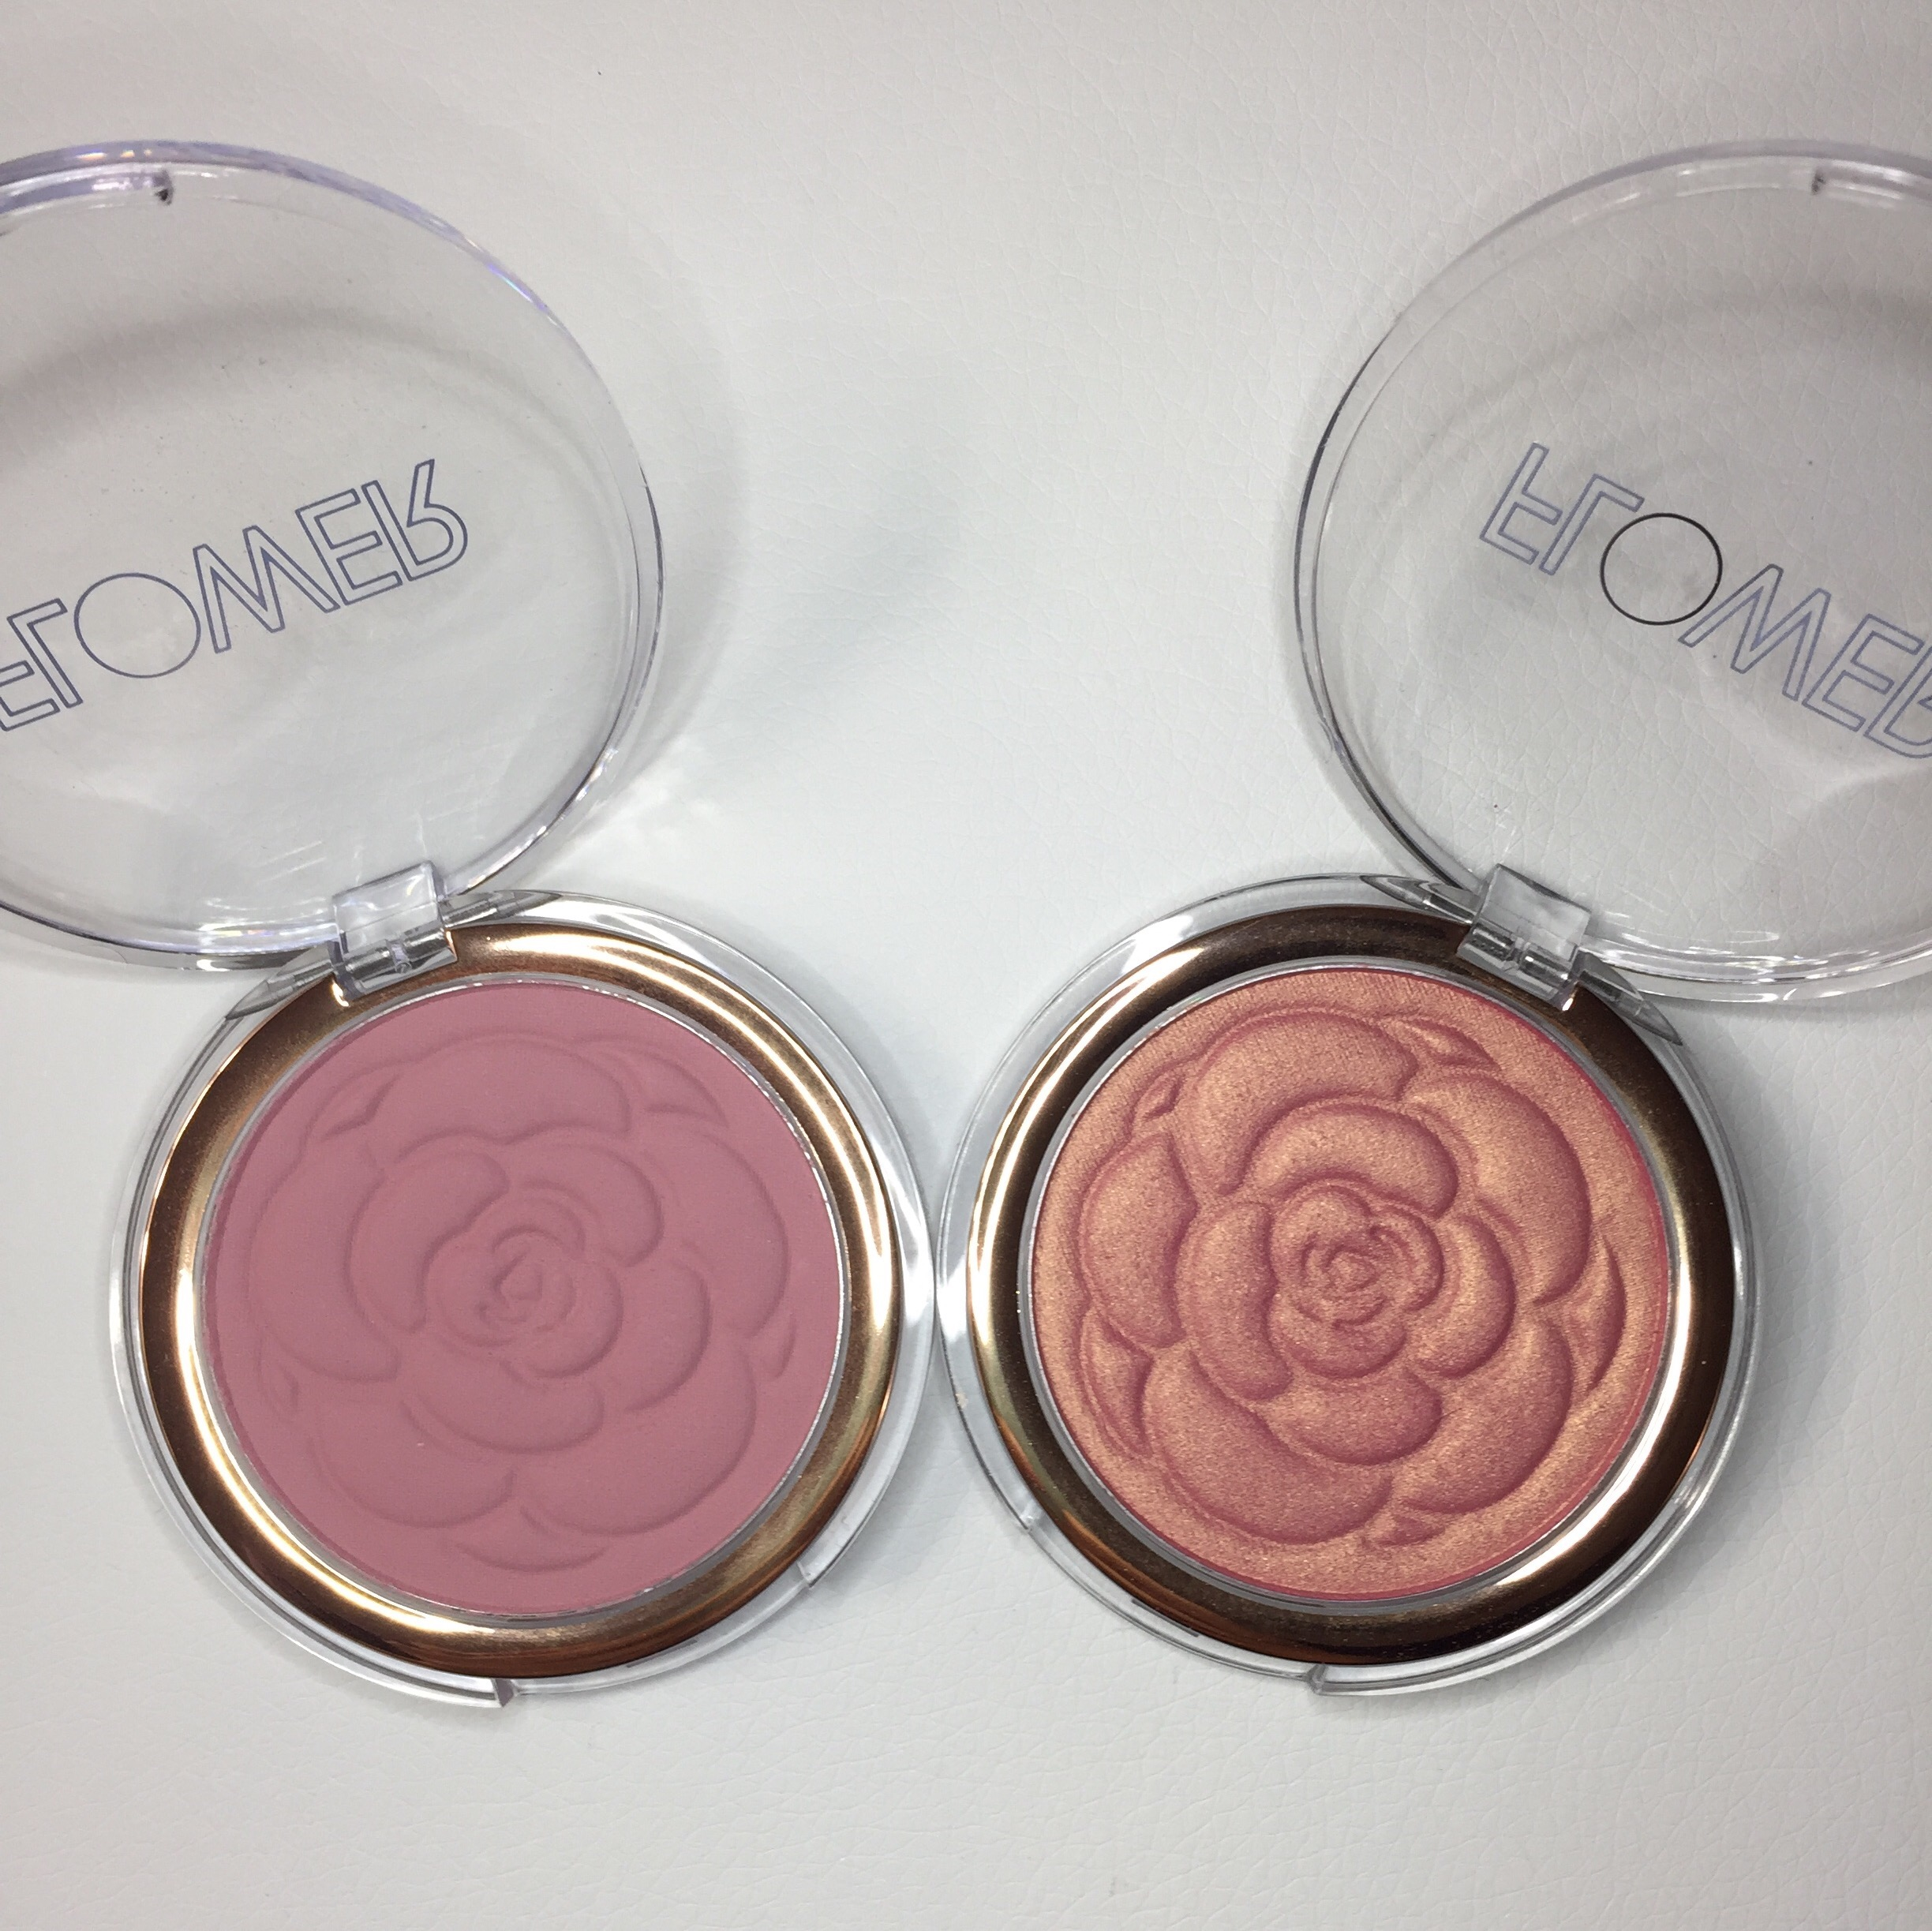 Flower cosmetics review as told by jenny first off i love the name of these blushes flower pots so cute anyway there are four shades in this line the two that i have are beautiful izmirmasajfo